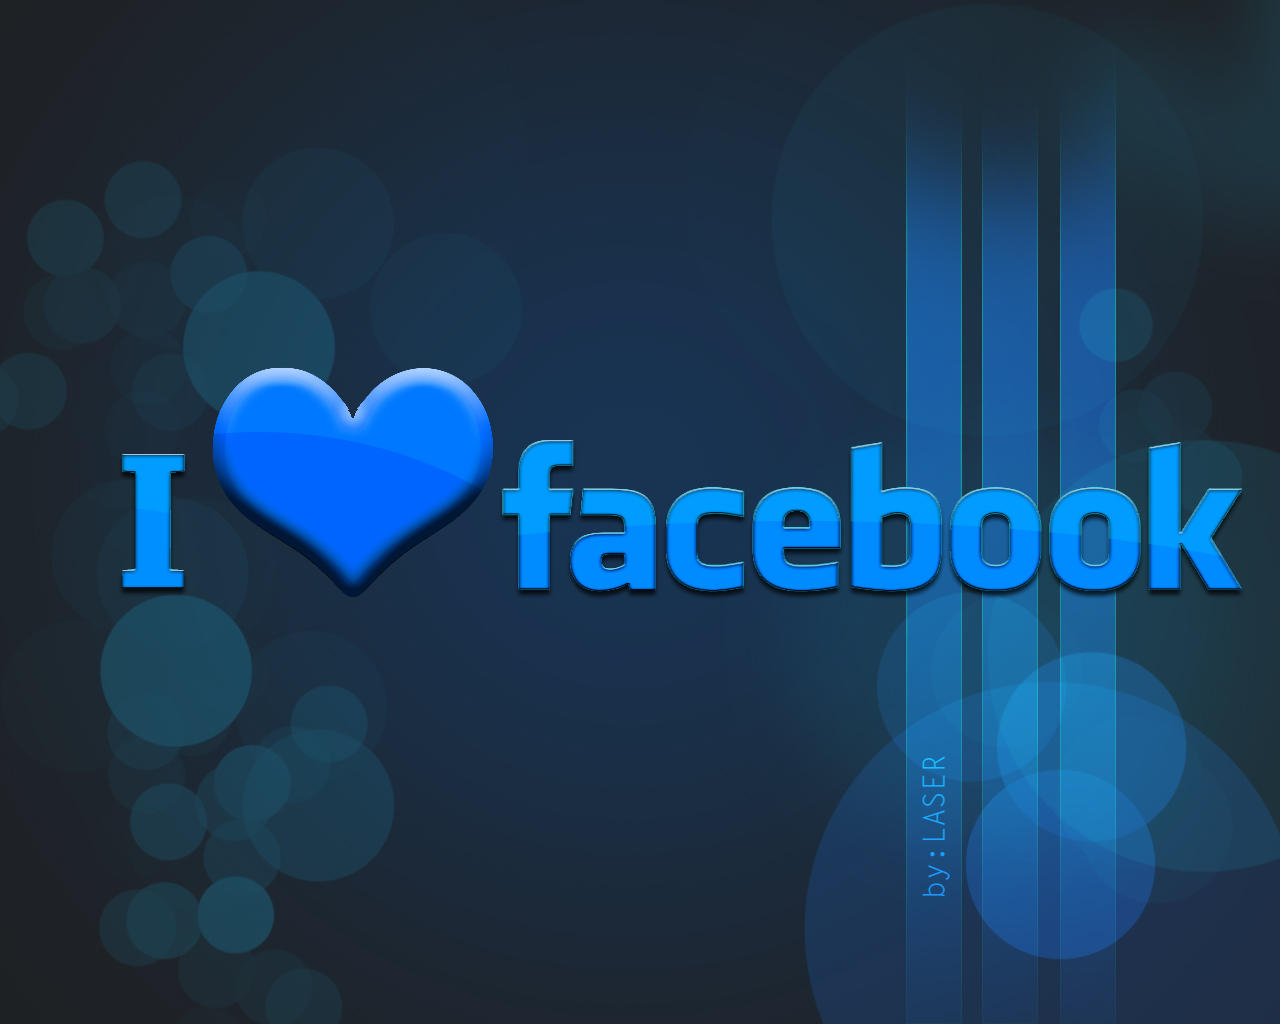 facebook logo and funny wallpapers itblogworld1